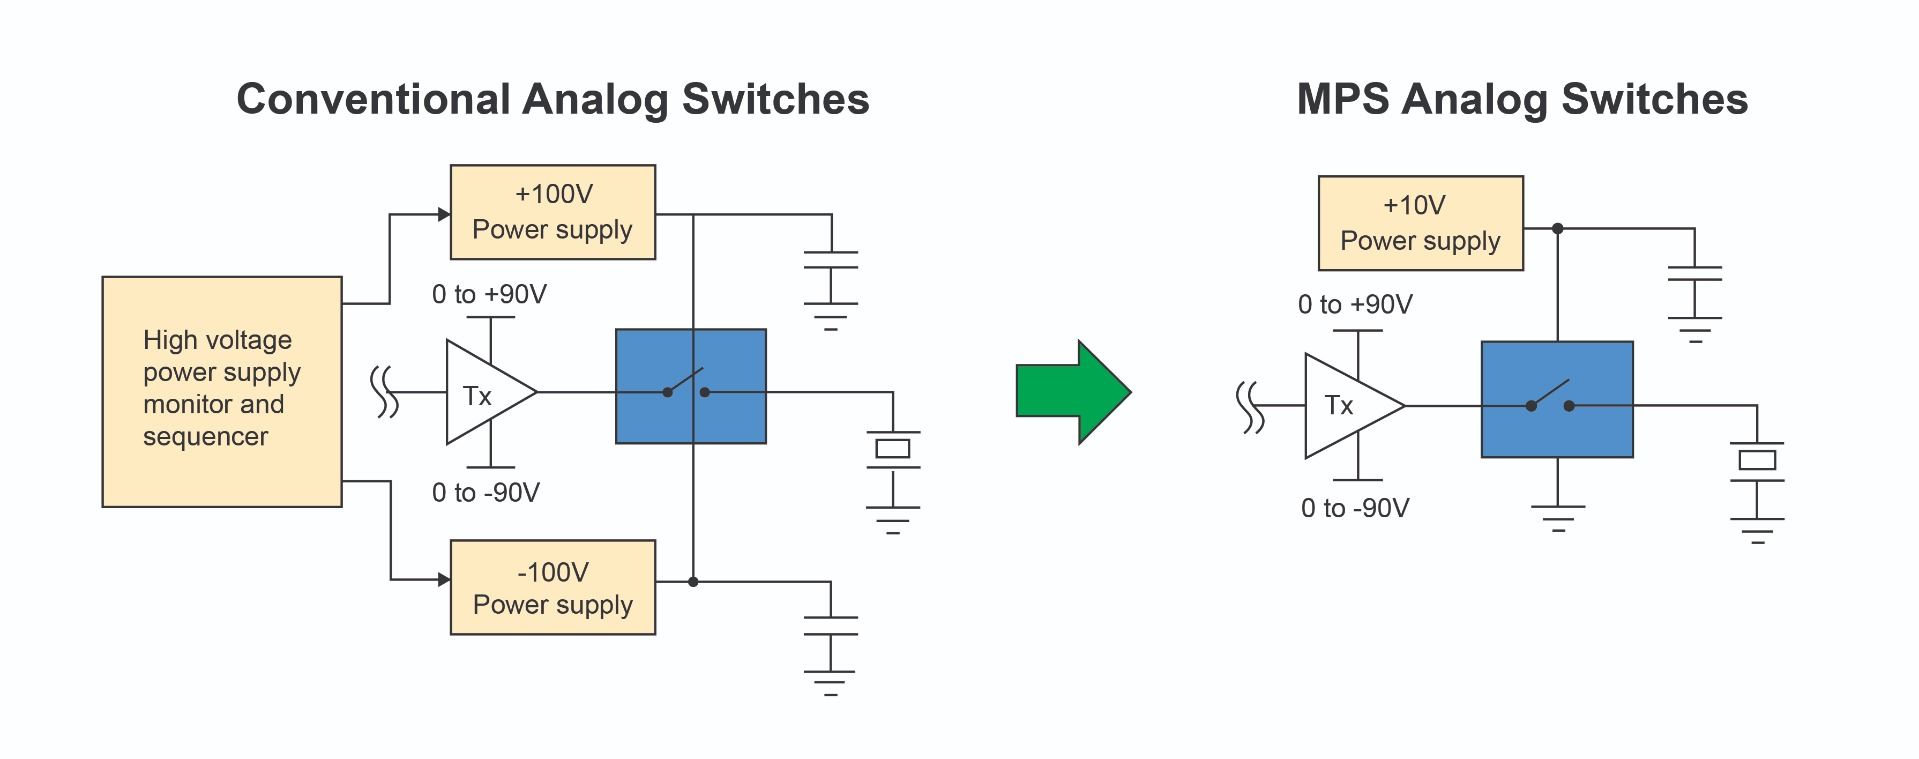 Figure 3: Conventional Analog Switches versus MPS Analog Switches